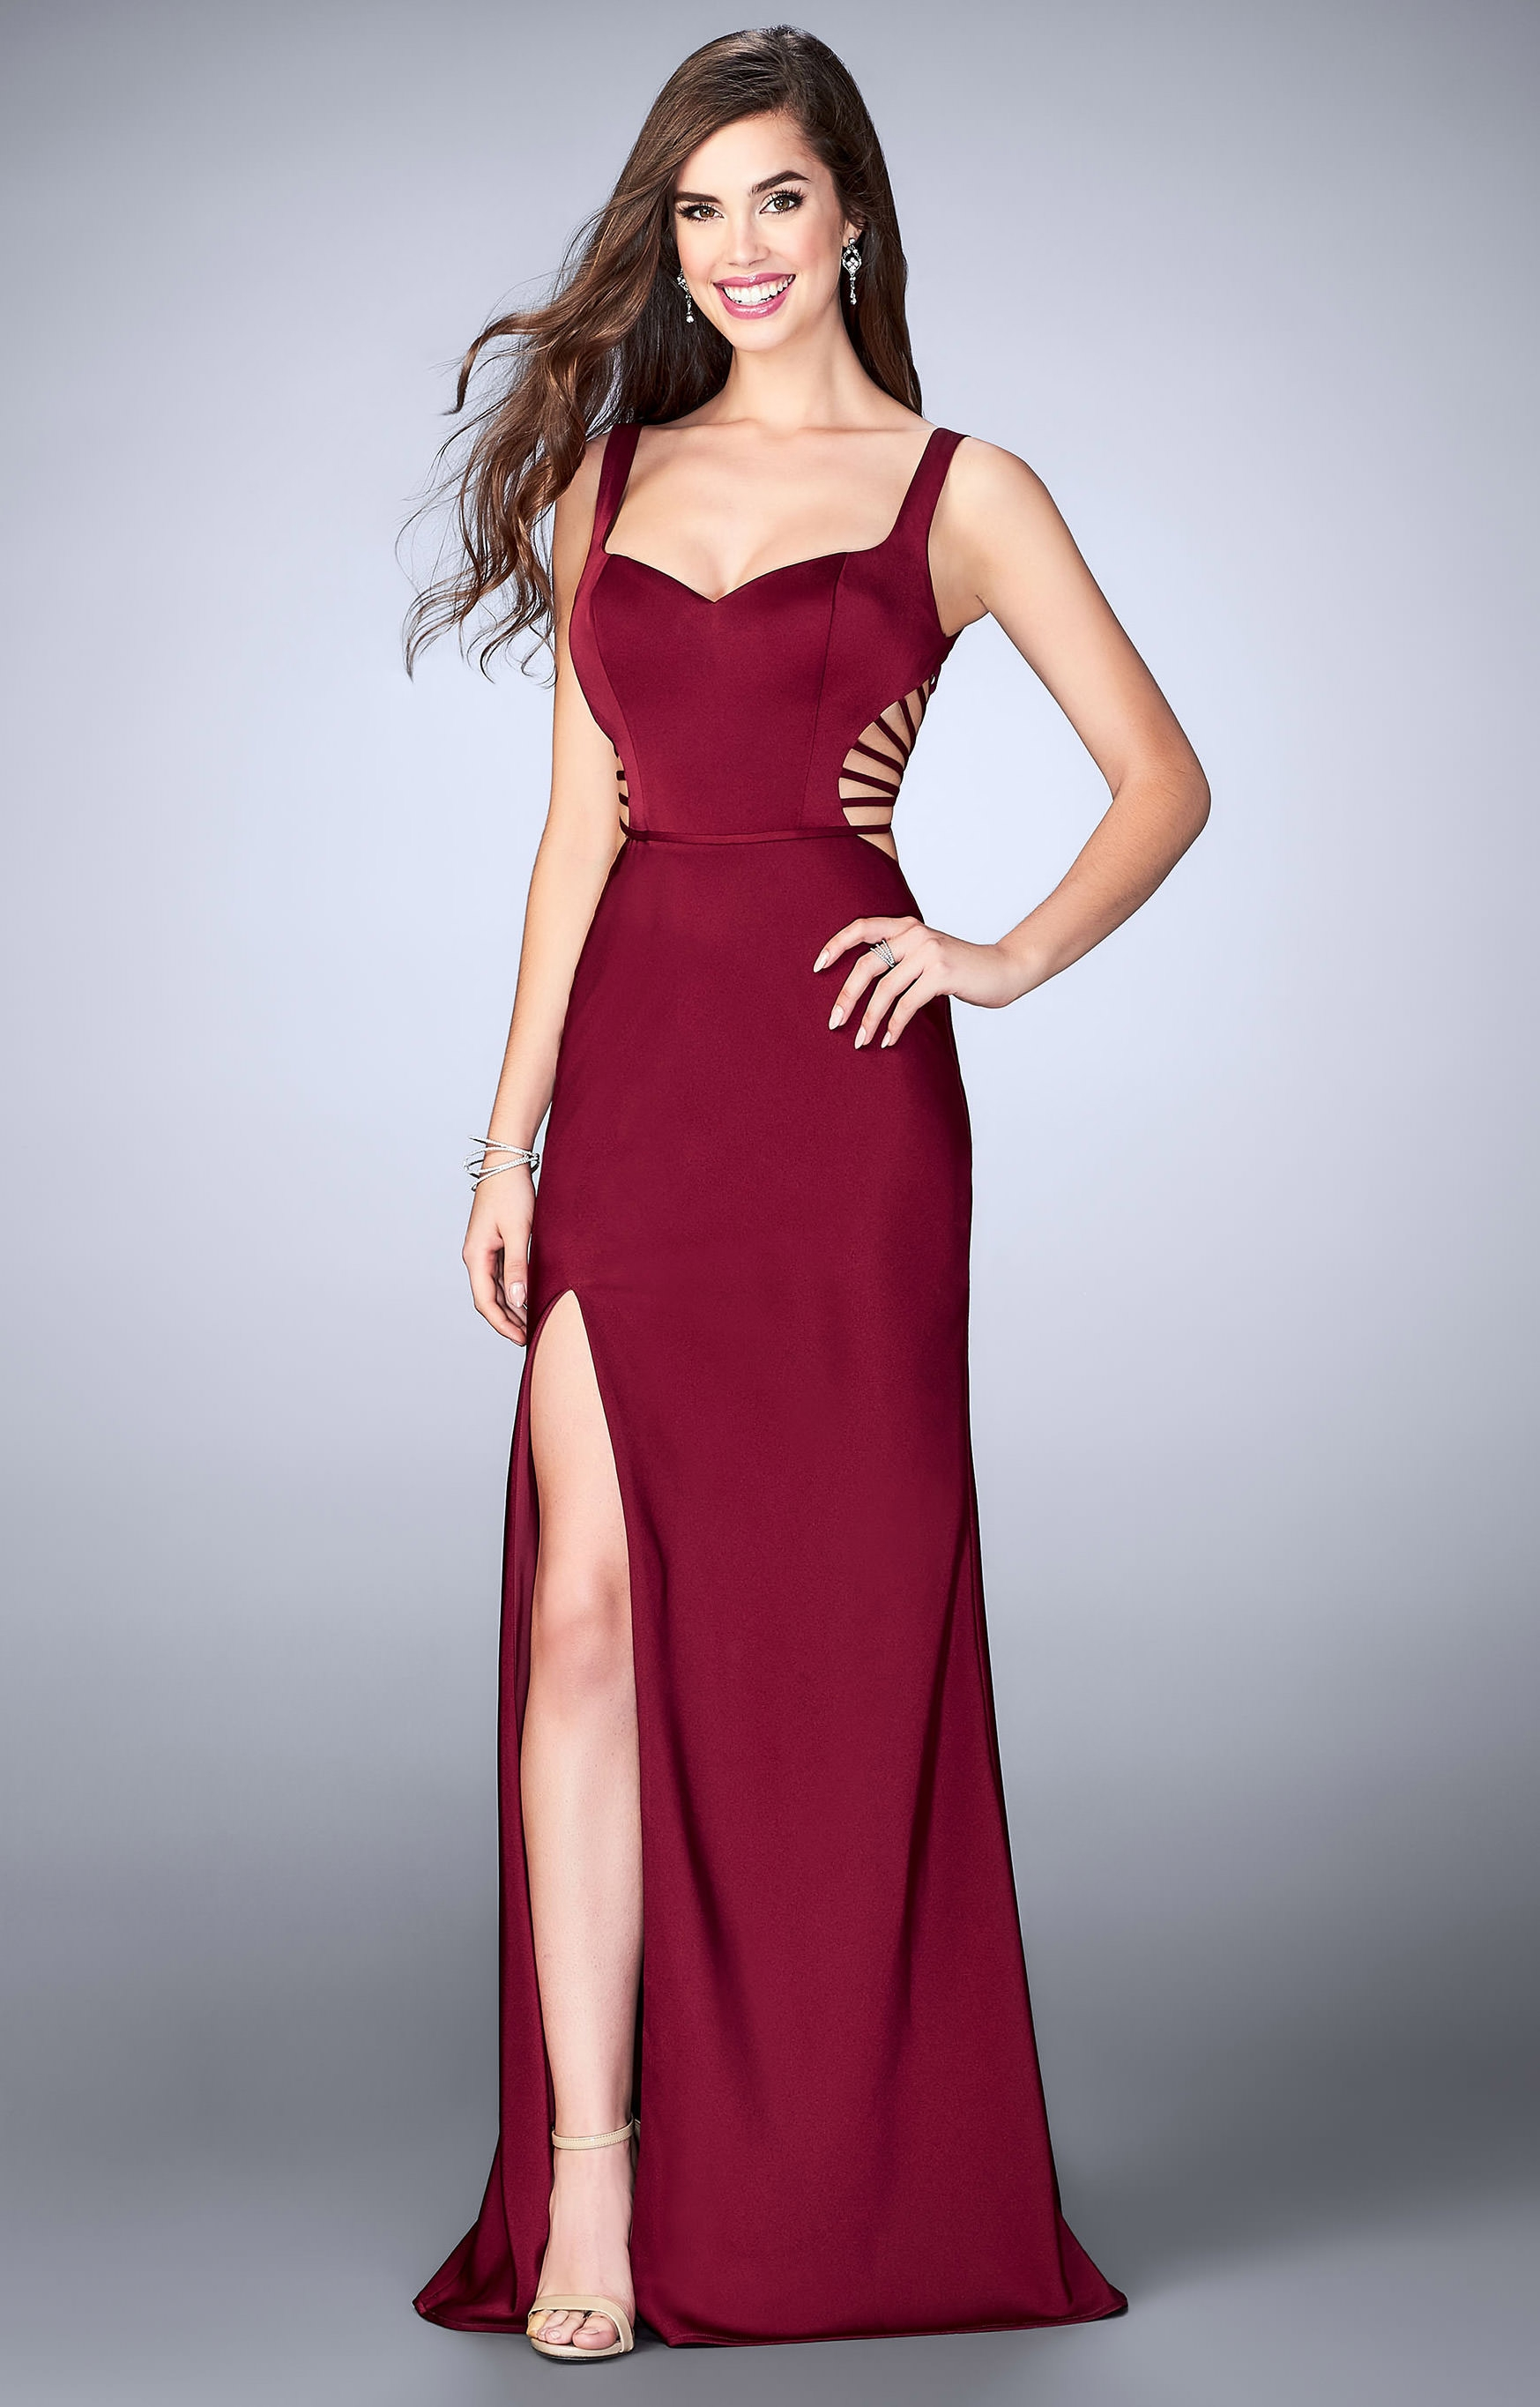 La Femme 24155 Jersey Knit Fitted Long Dress With Cut